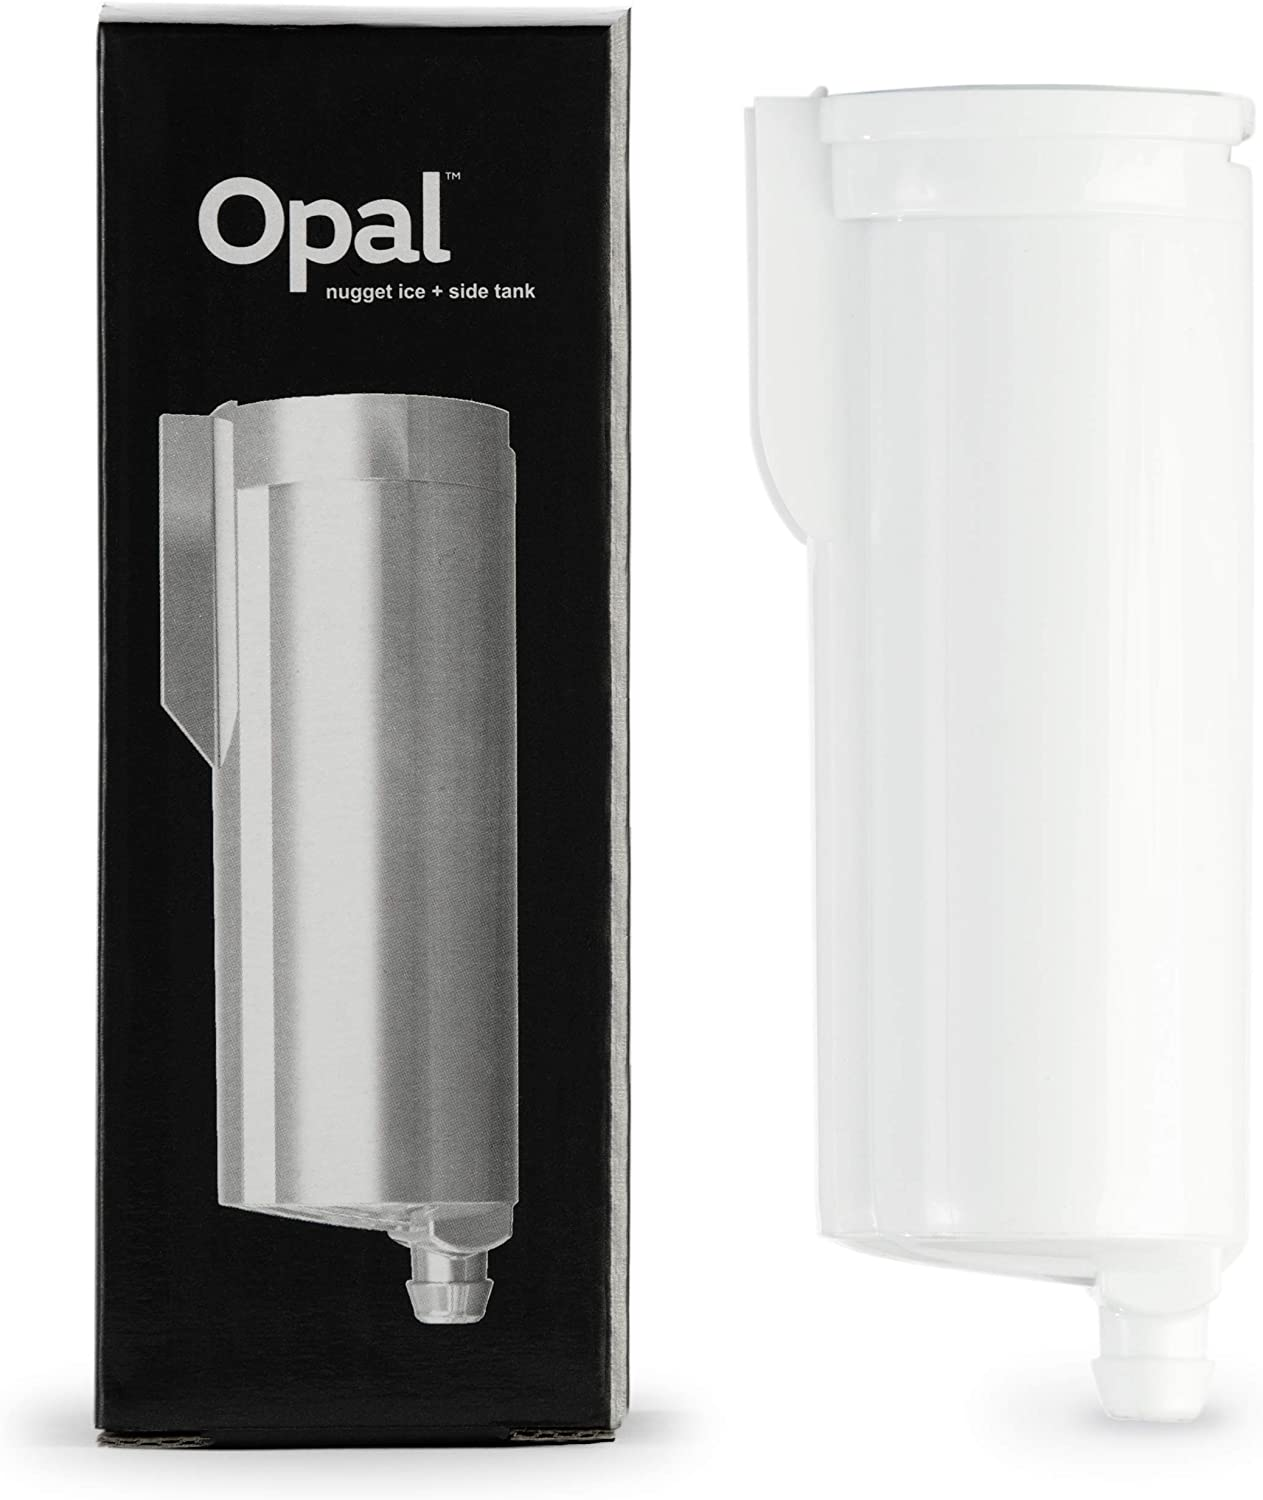 GE PROFILE P4INKFILTR Opal Ice Maker water filter, White